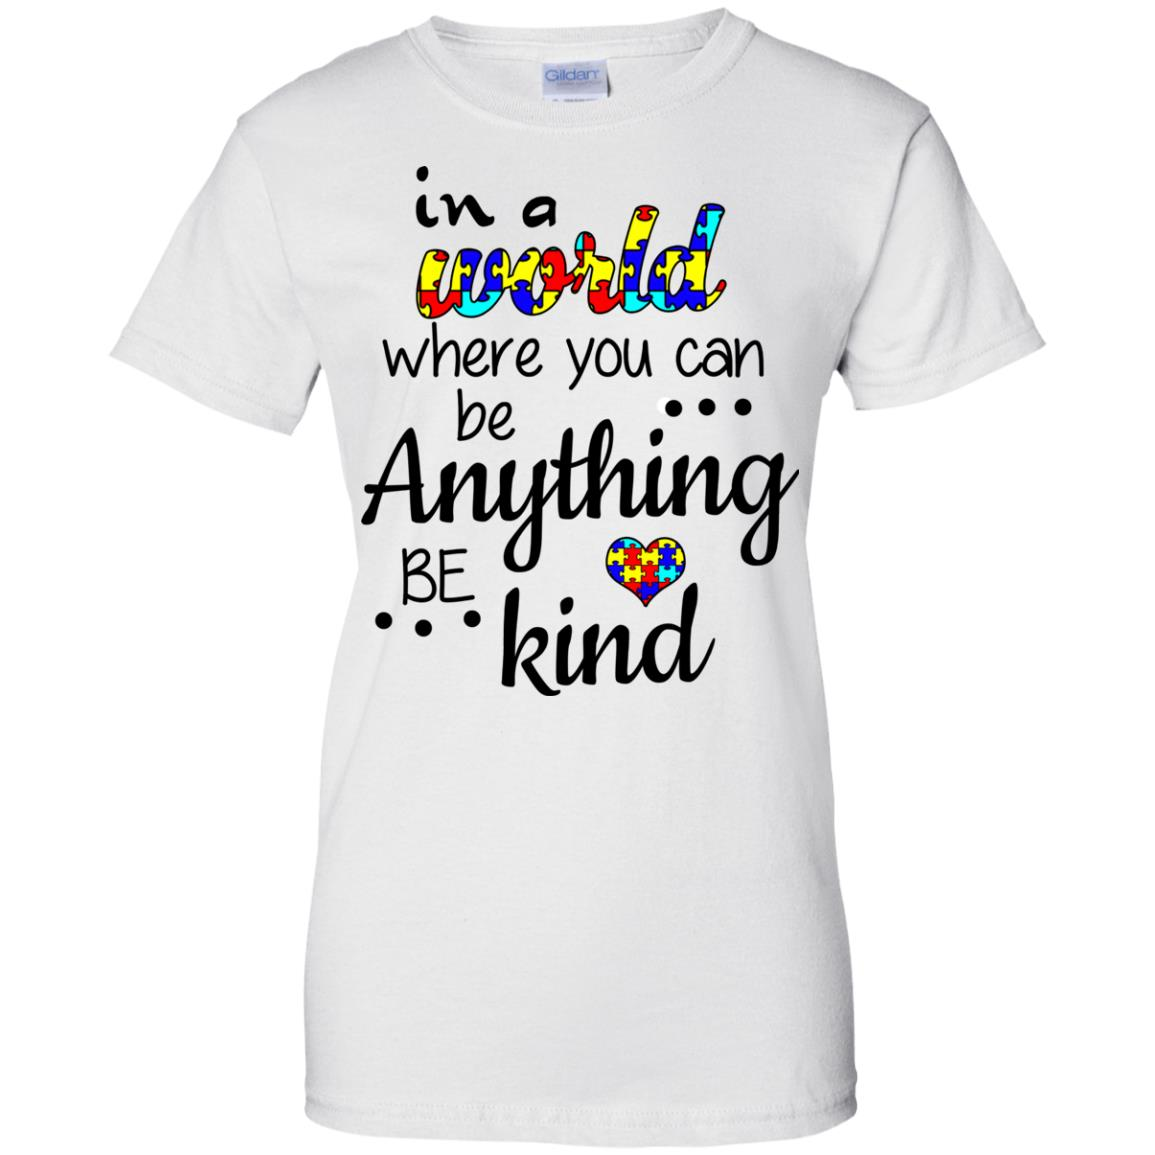 image 675 - Autism: In a World Where You Can Be Anything Be Kind Shirt